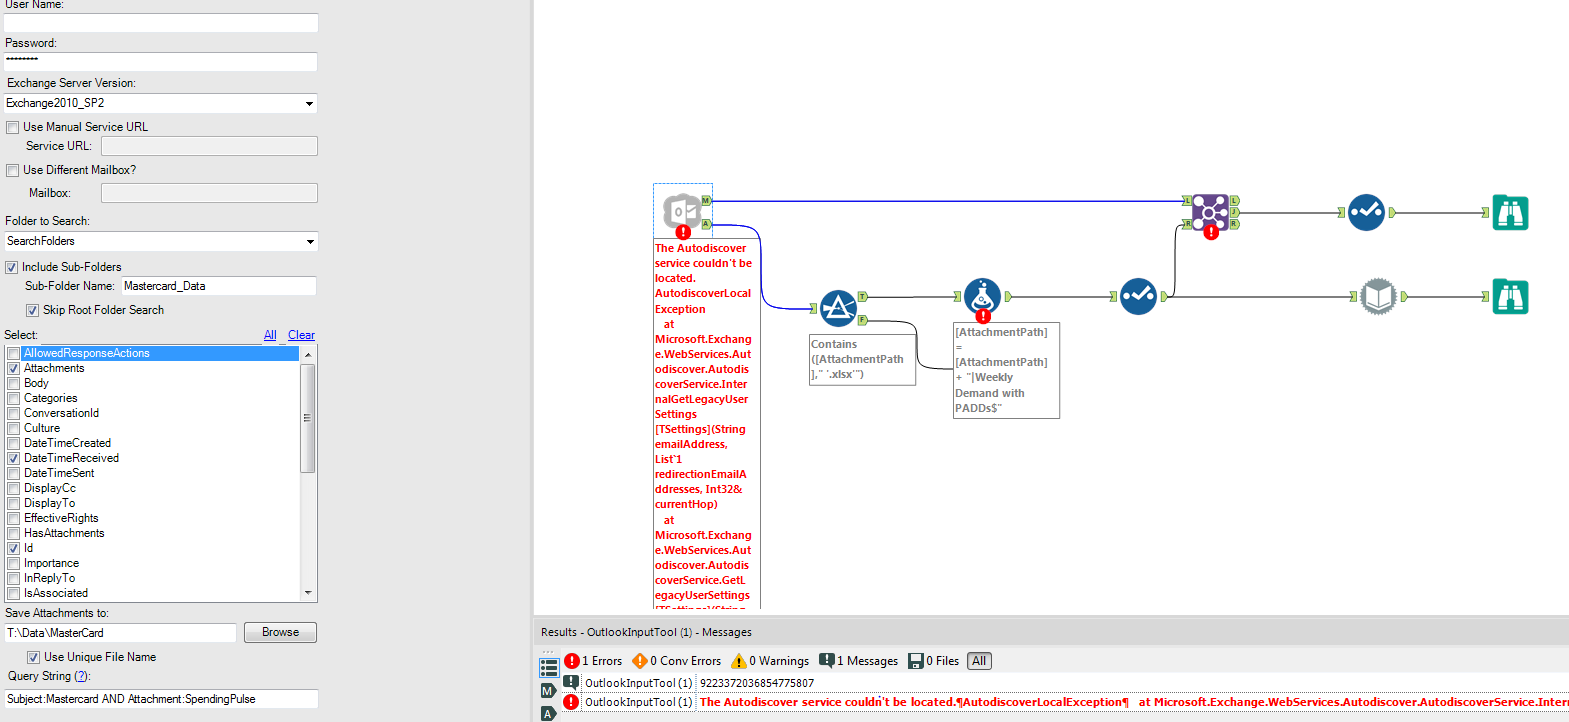 Outlook Input tool Created with the Alteryx SDK - Page 3 - Alteryx